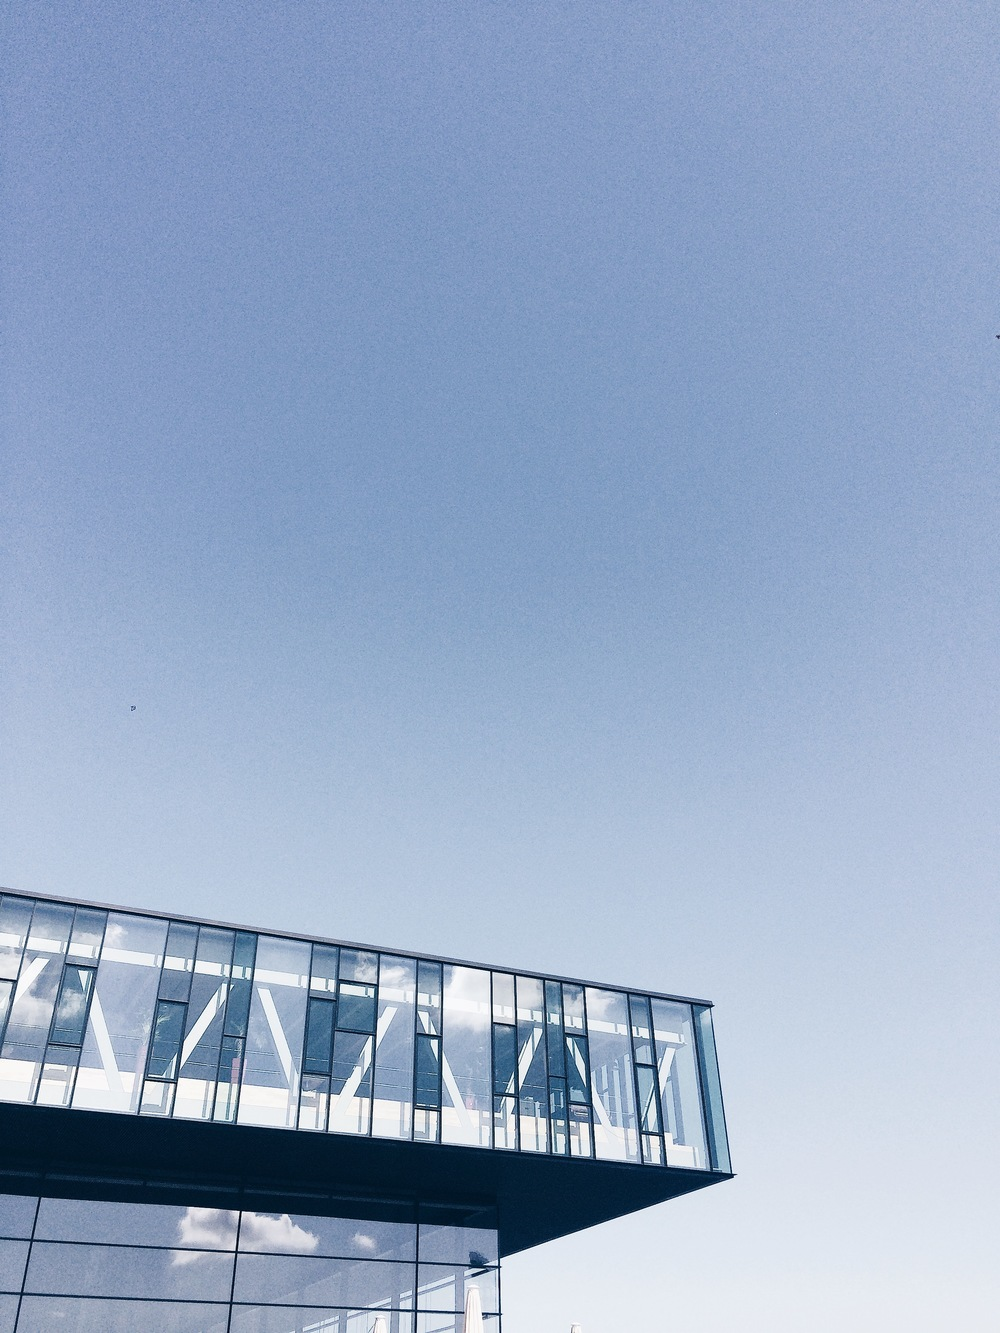 Architecture in Copenhagen by SHELLSTEN (iPhone 5s)